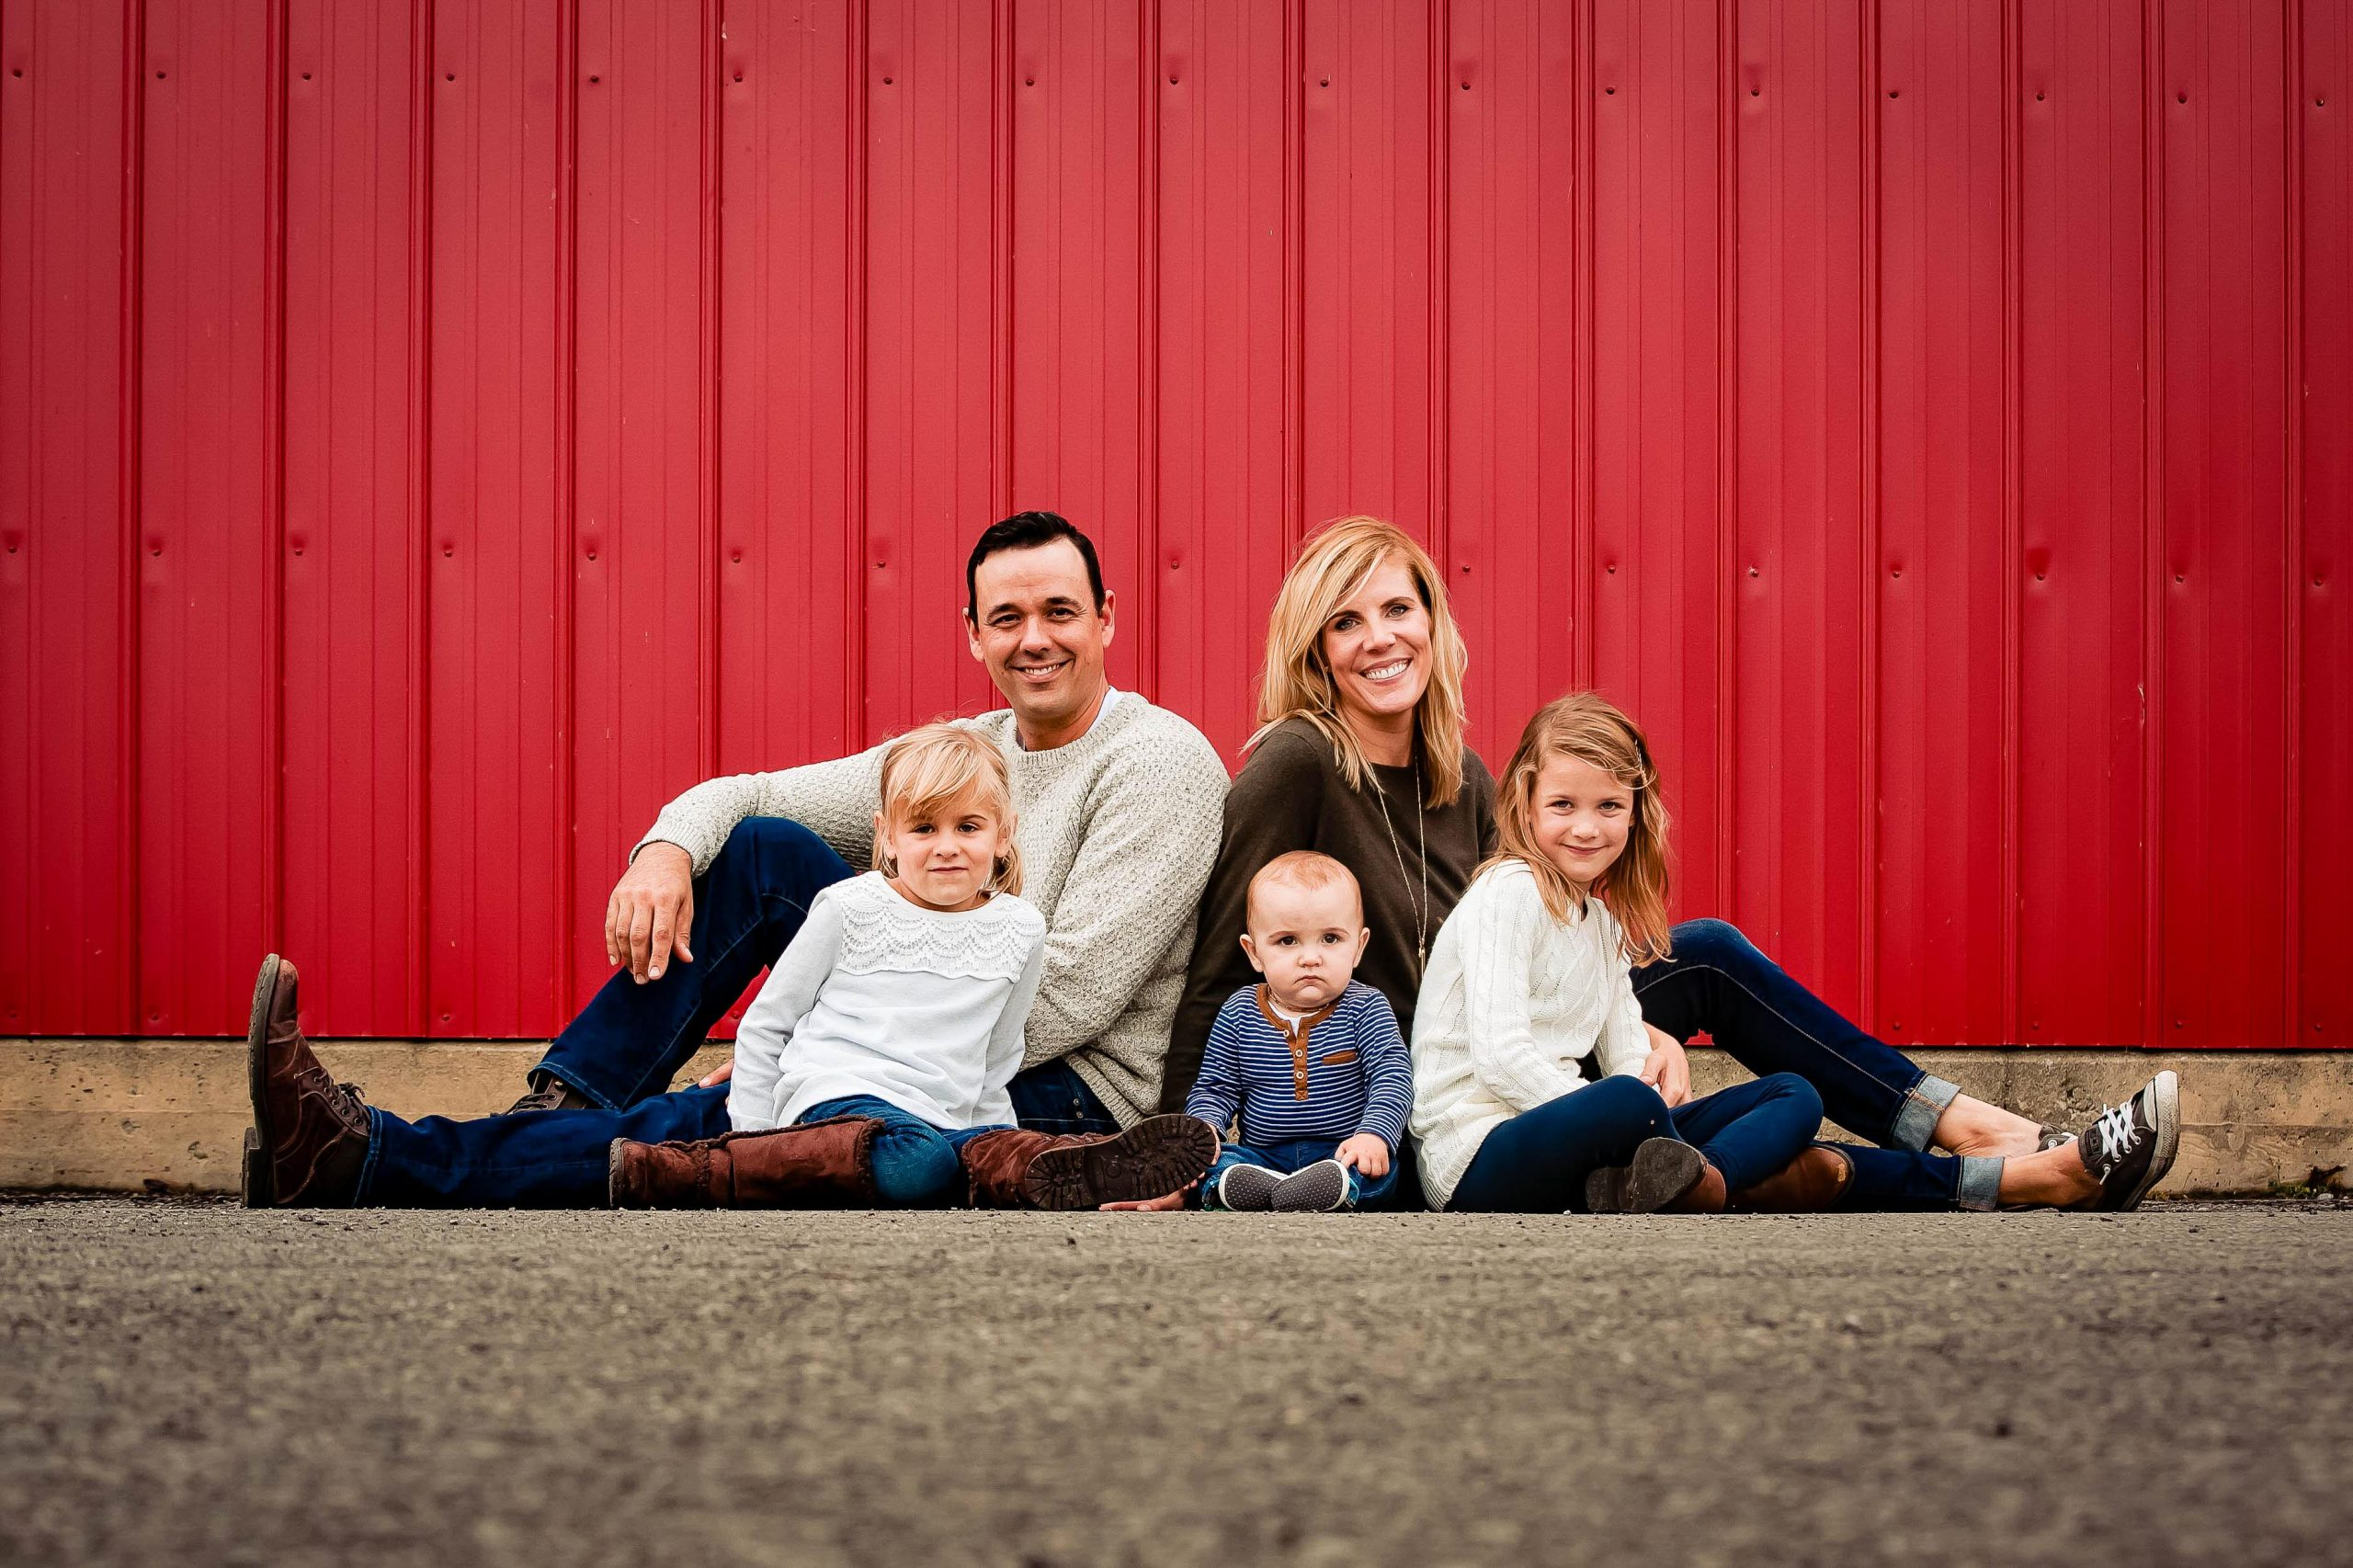 photo of a family sitting in front of a red wall